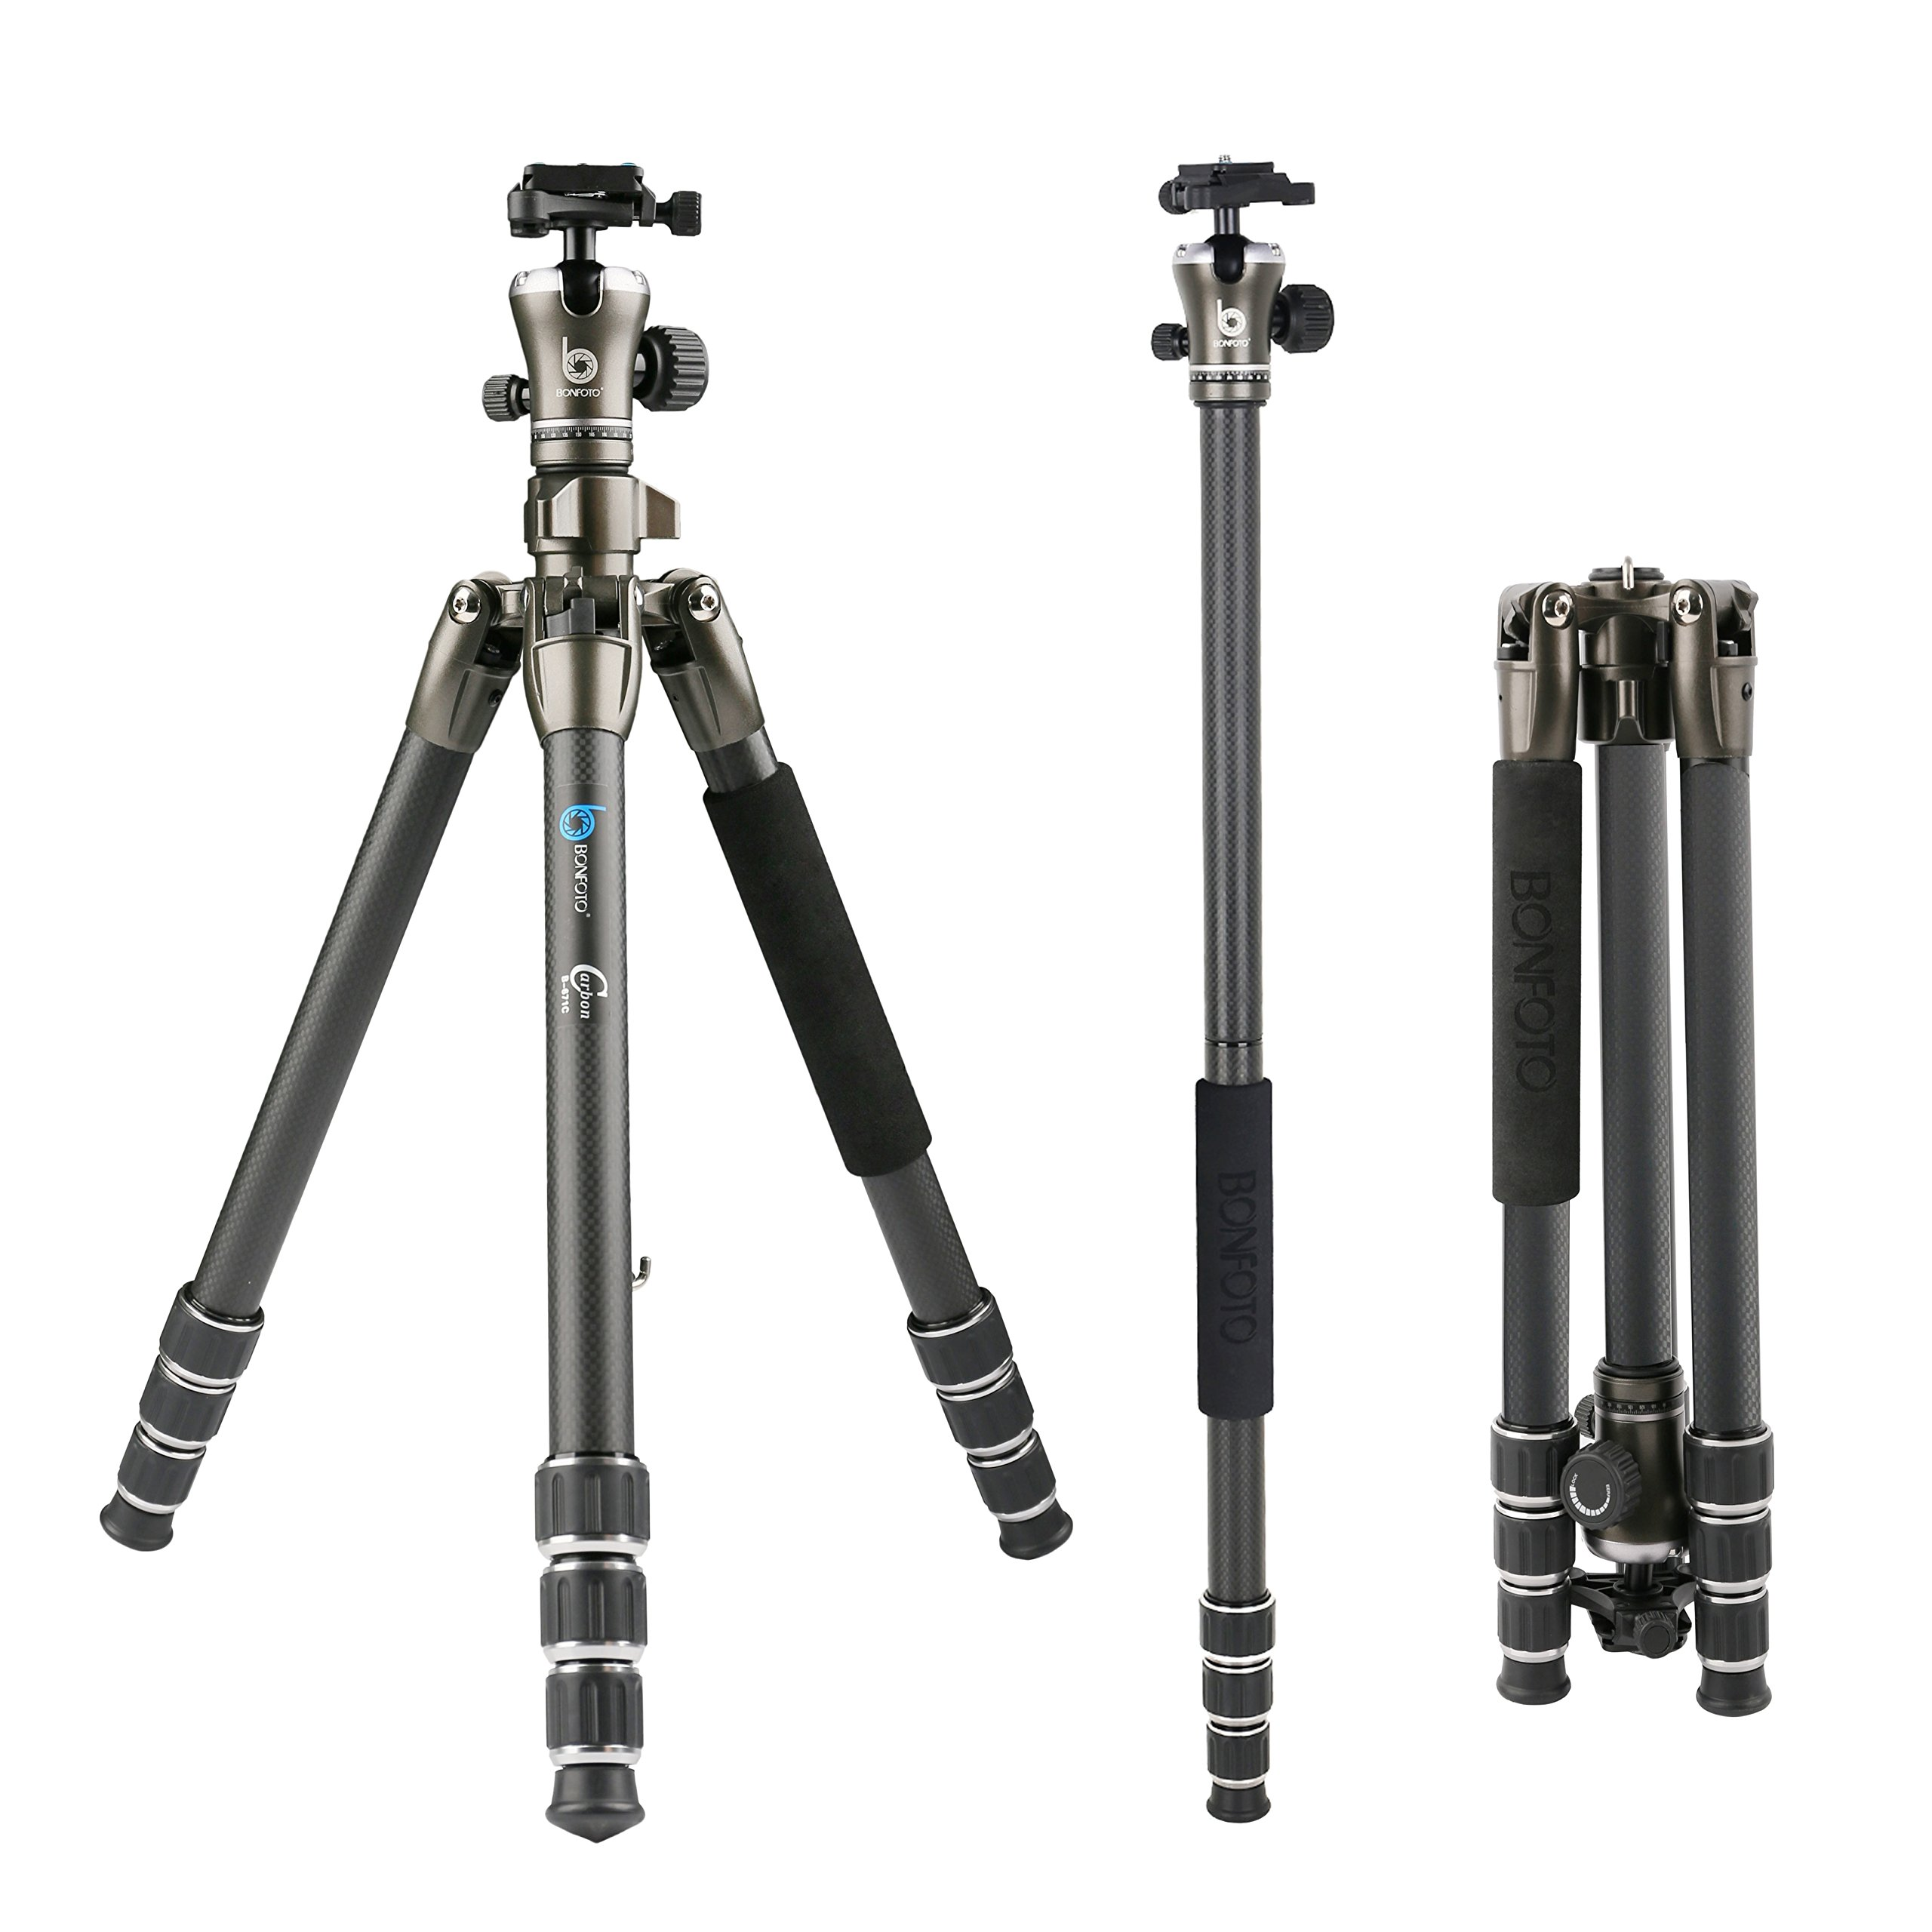 BONFOTO B671C Carbon Fiber Lightweight Portable Camera Travel Tripod With Ball Head, Two Levels And Carrying Bag For DSLR, Bronze Grey by BONFOTO